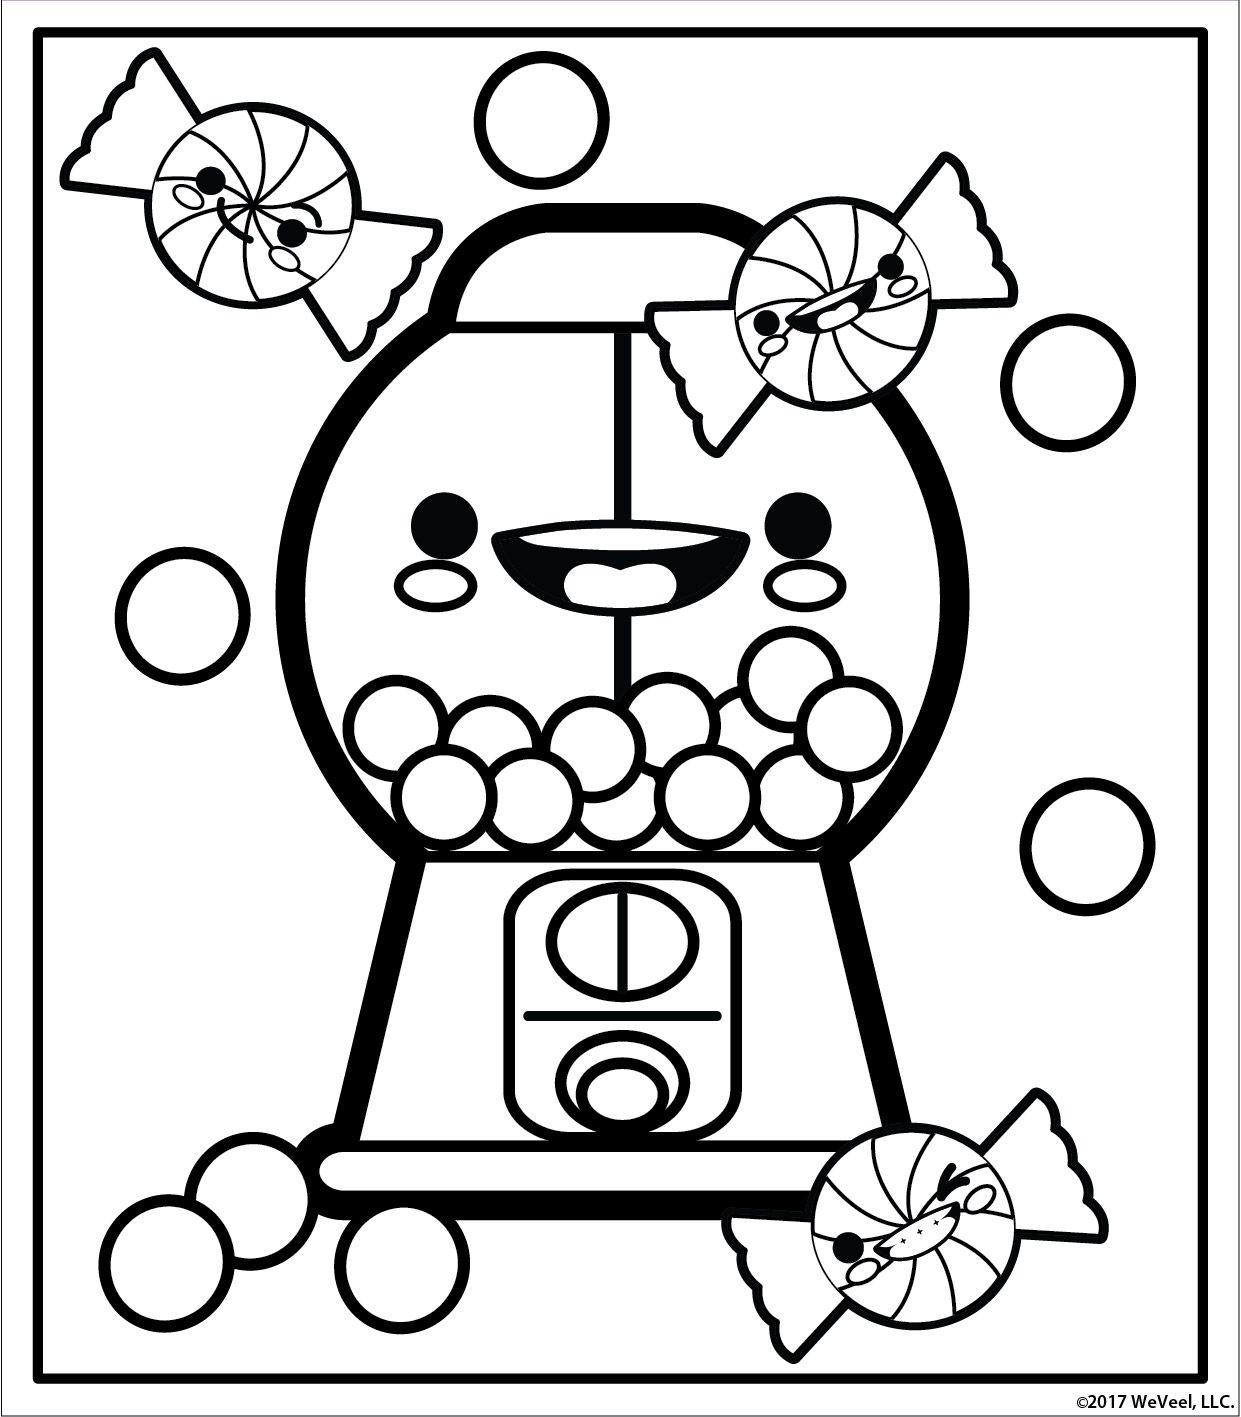 - Free Printable Coloring Pages At Scentos.com Cute Girl Coloring